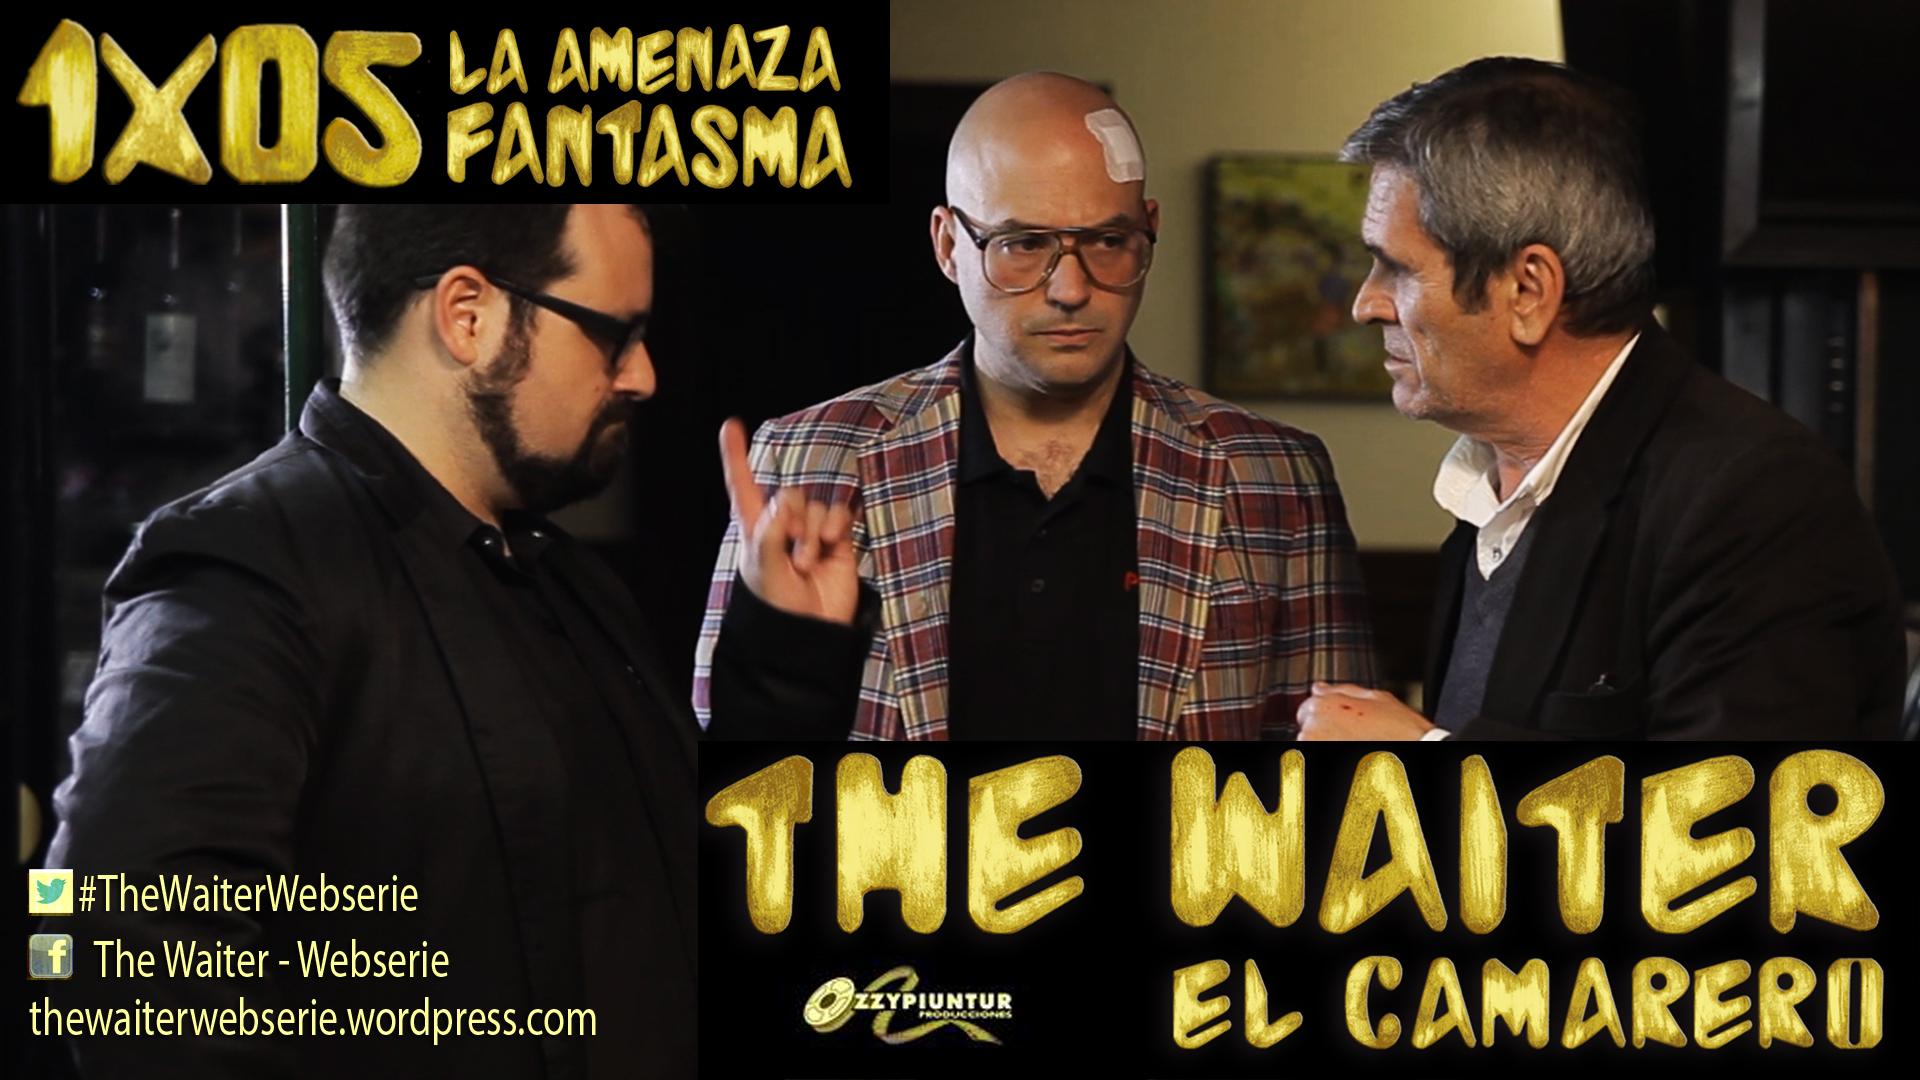 The Waiter Capítulo 5: La amenaza fantasma